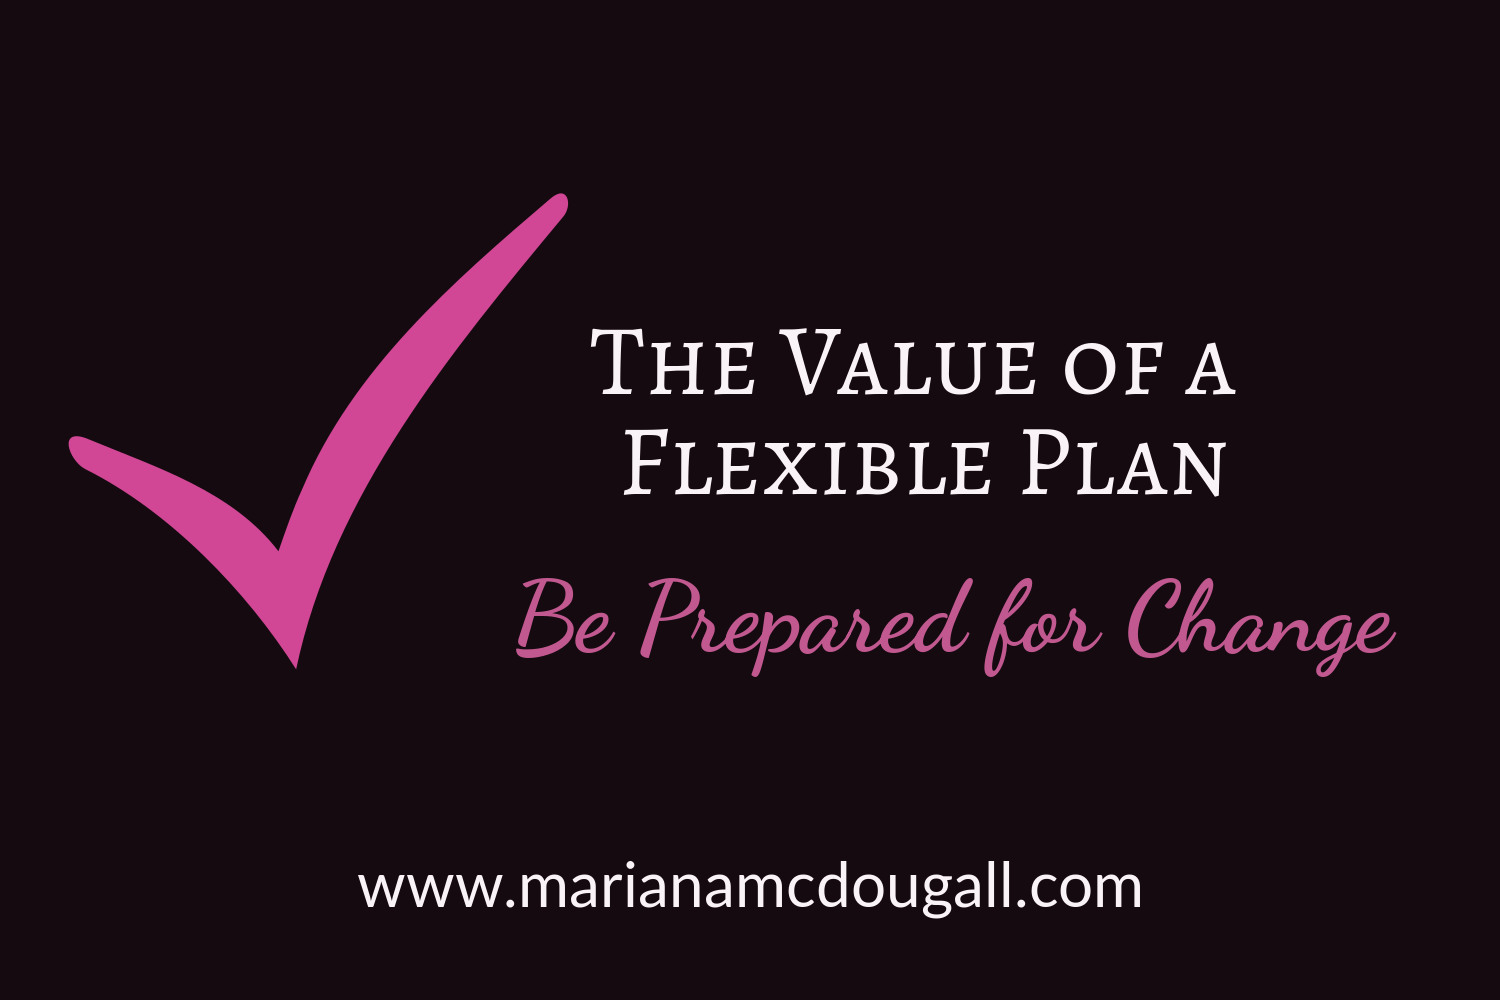 The value of a flexible plan